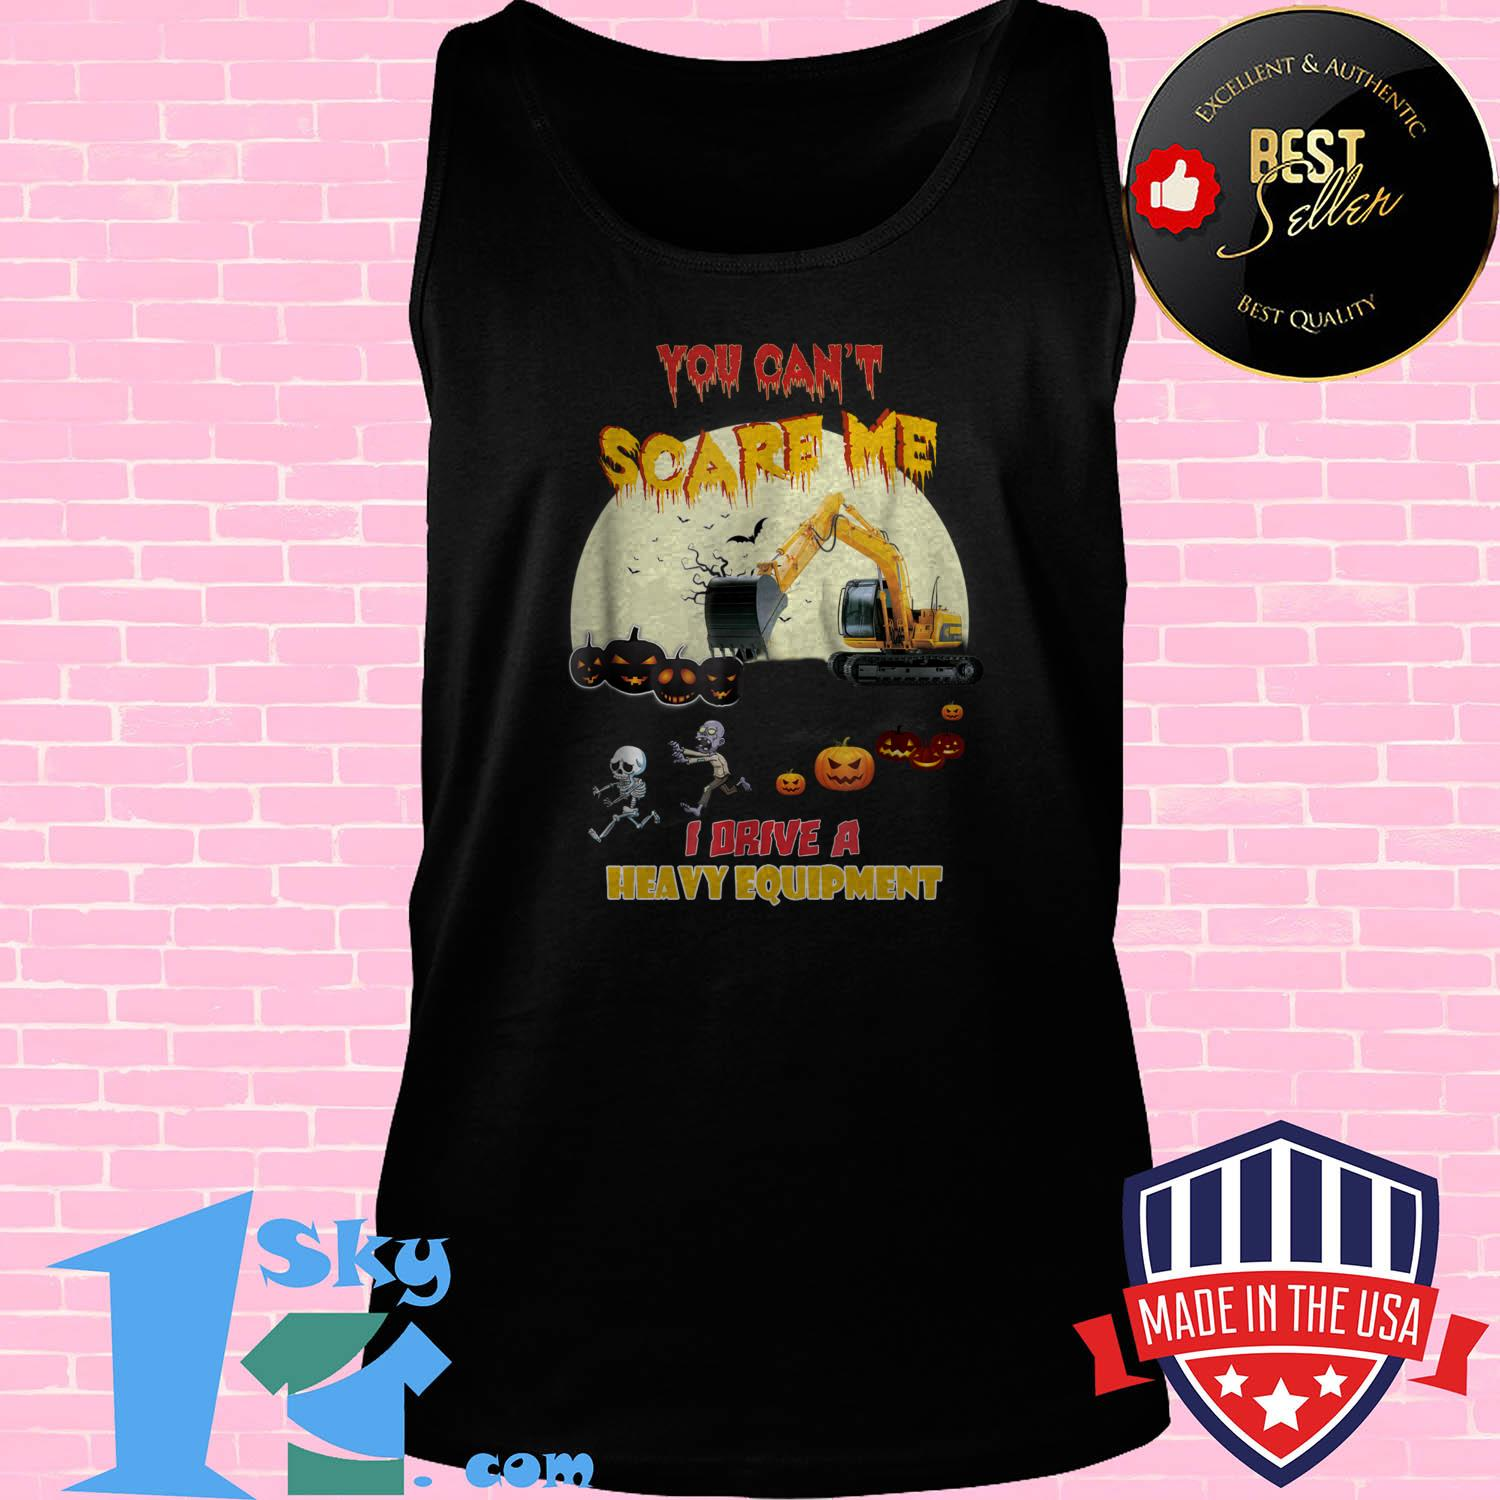 you cant scare me i drive a heavy equipment halloween tank top - You Can't Scare Me I Drive A Heavy Equipment Halloween shirt